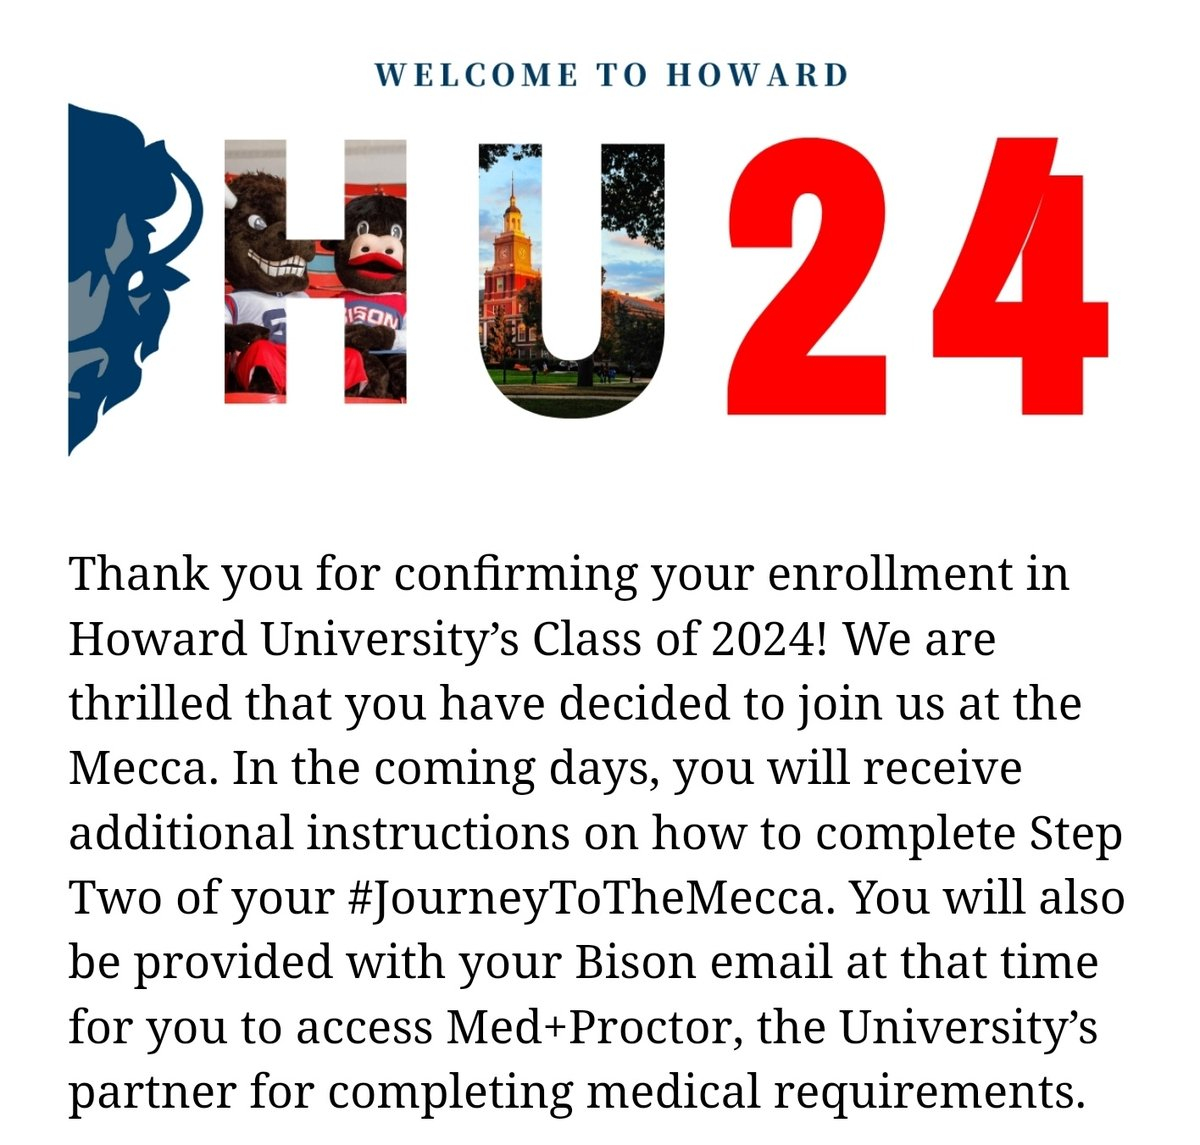 Enrolled and officially a baby bison🥺 Howard University in the fall! ❤💙#HU24